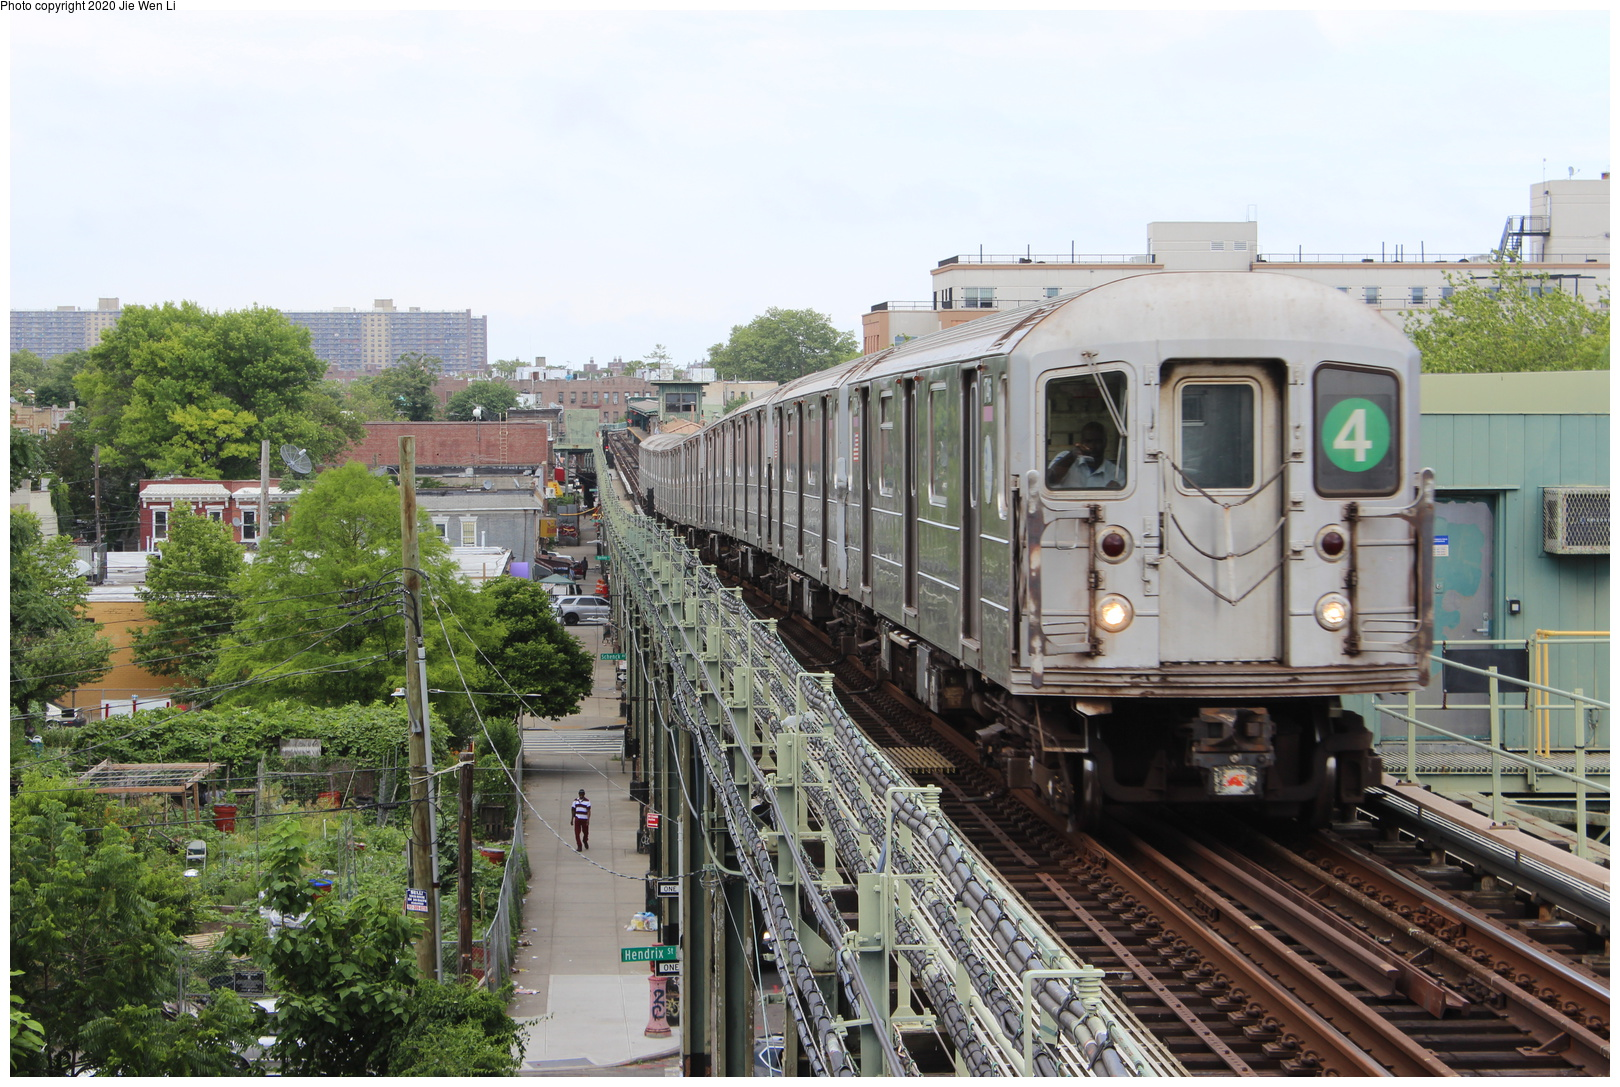 (267k, 1044x726)<br><b>Country:</b> United States<br><b>City:</b> New York<br><b>System:</b> New York City Transit<br><b>Line:</b> BMT Myrtle Avenue Line<br><b>Location:</b> Metropolitan Avenue <br><b>Car:</b> BMT Multi  <br><b>Photo by:</b> Joel Shanus<br><b>Viewed (this week/total):</b> 2 / 1797